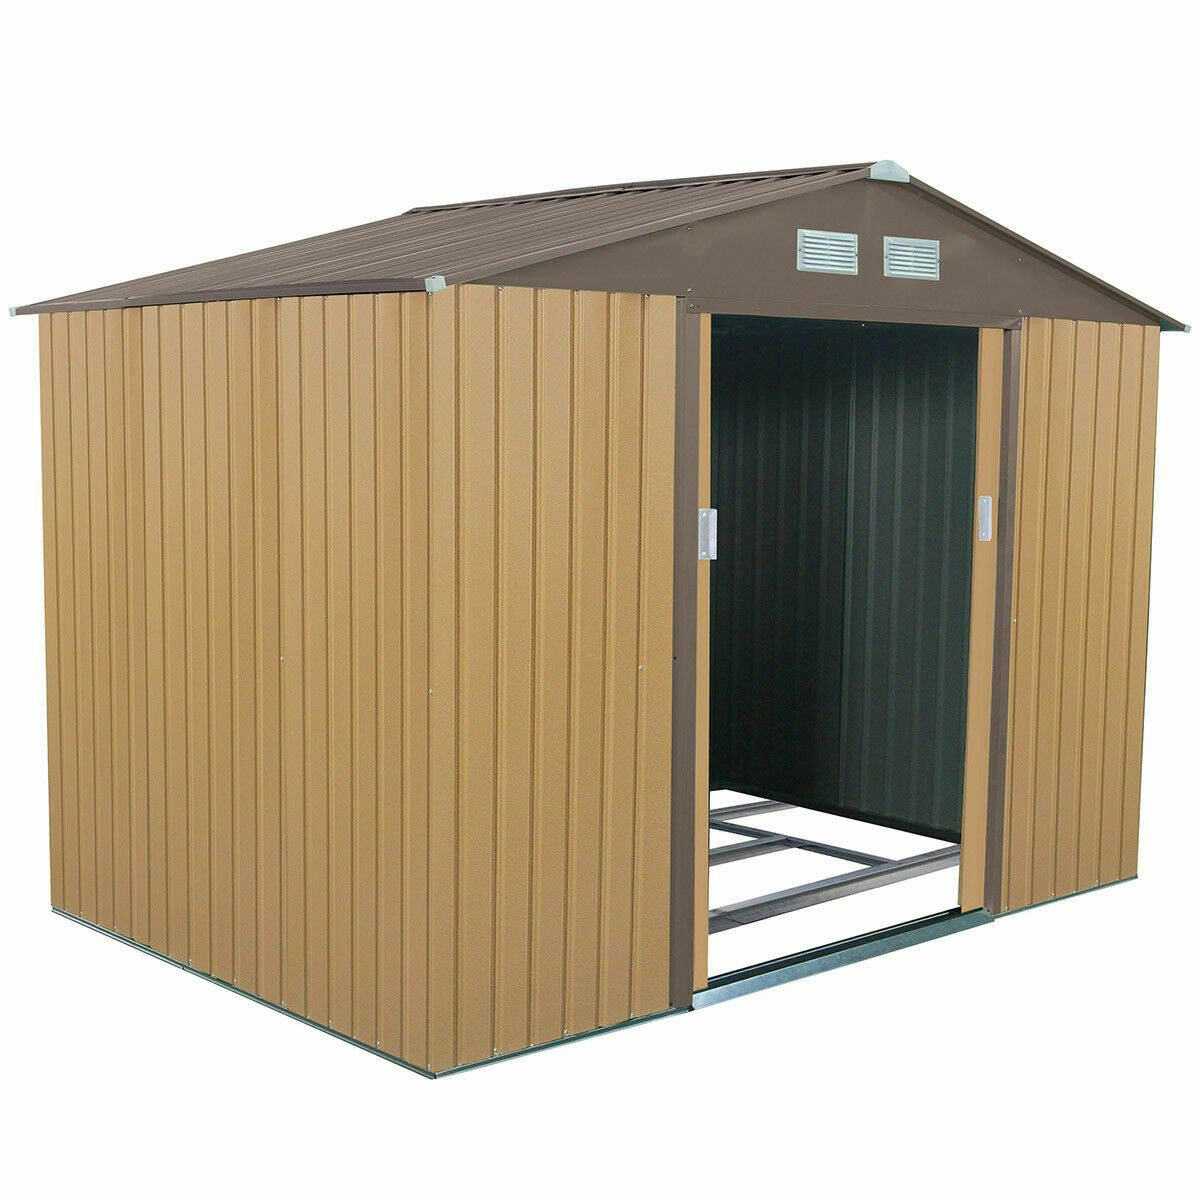 9 X 6 Outdoor Storage Shed Tool House Sliding Door Steel Khaki Outdoor Storage Sheds Garden Storage Shed Garden Tool Storage